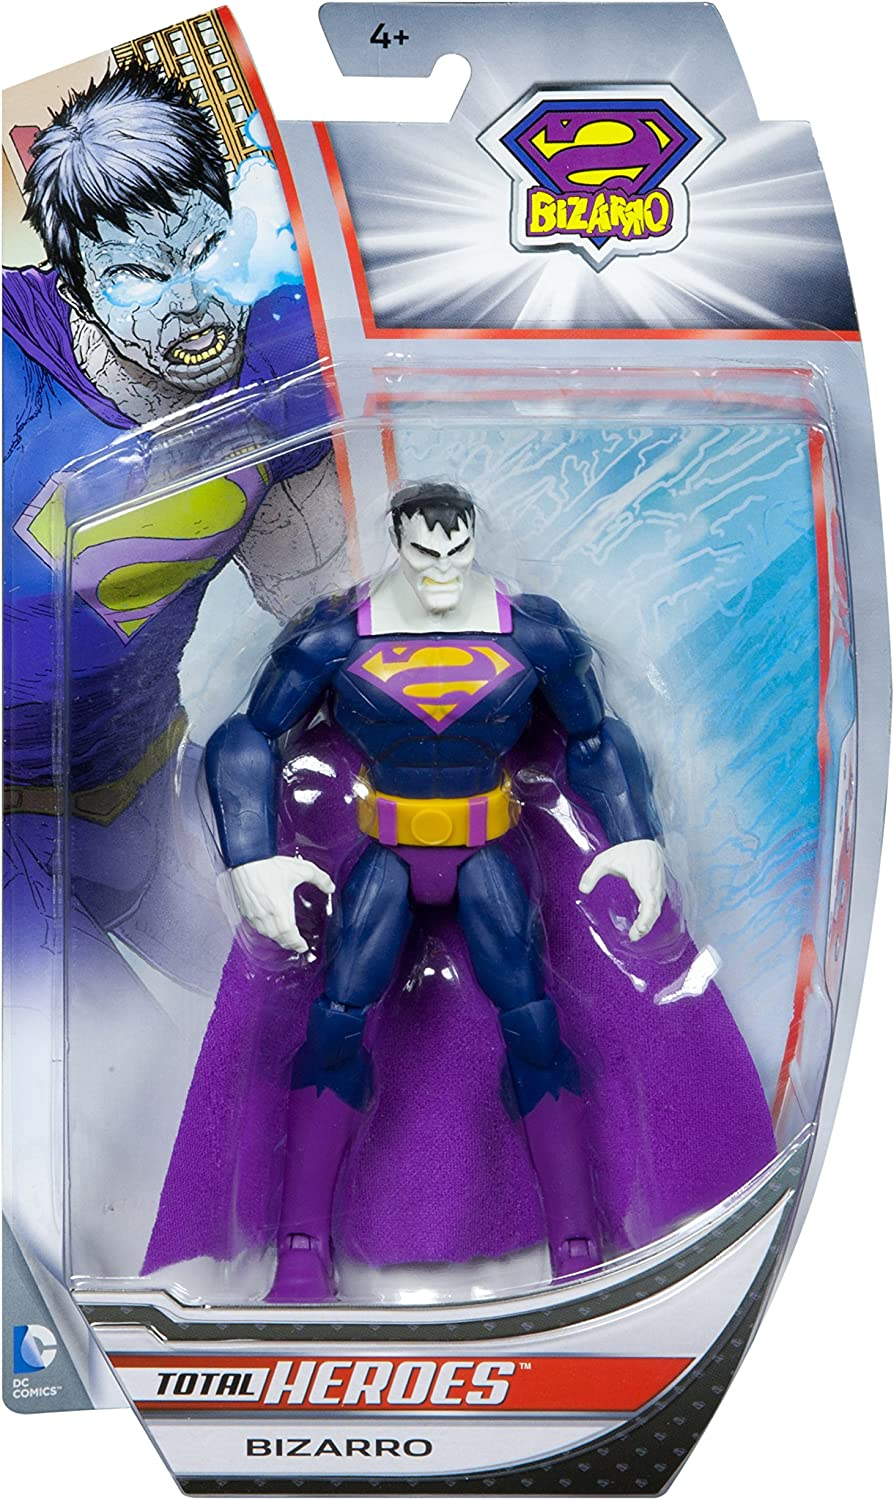 BIZARRO Superman Total Heroes 6 inch action figure Mattel DC Universe